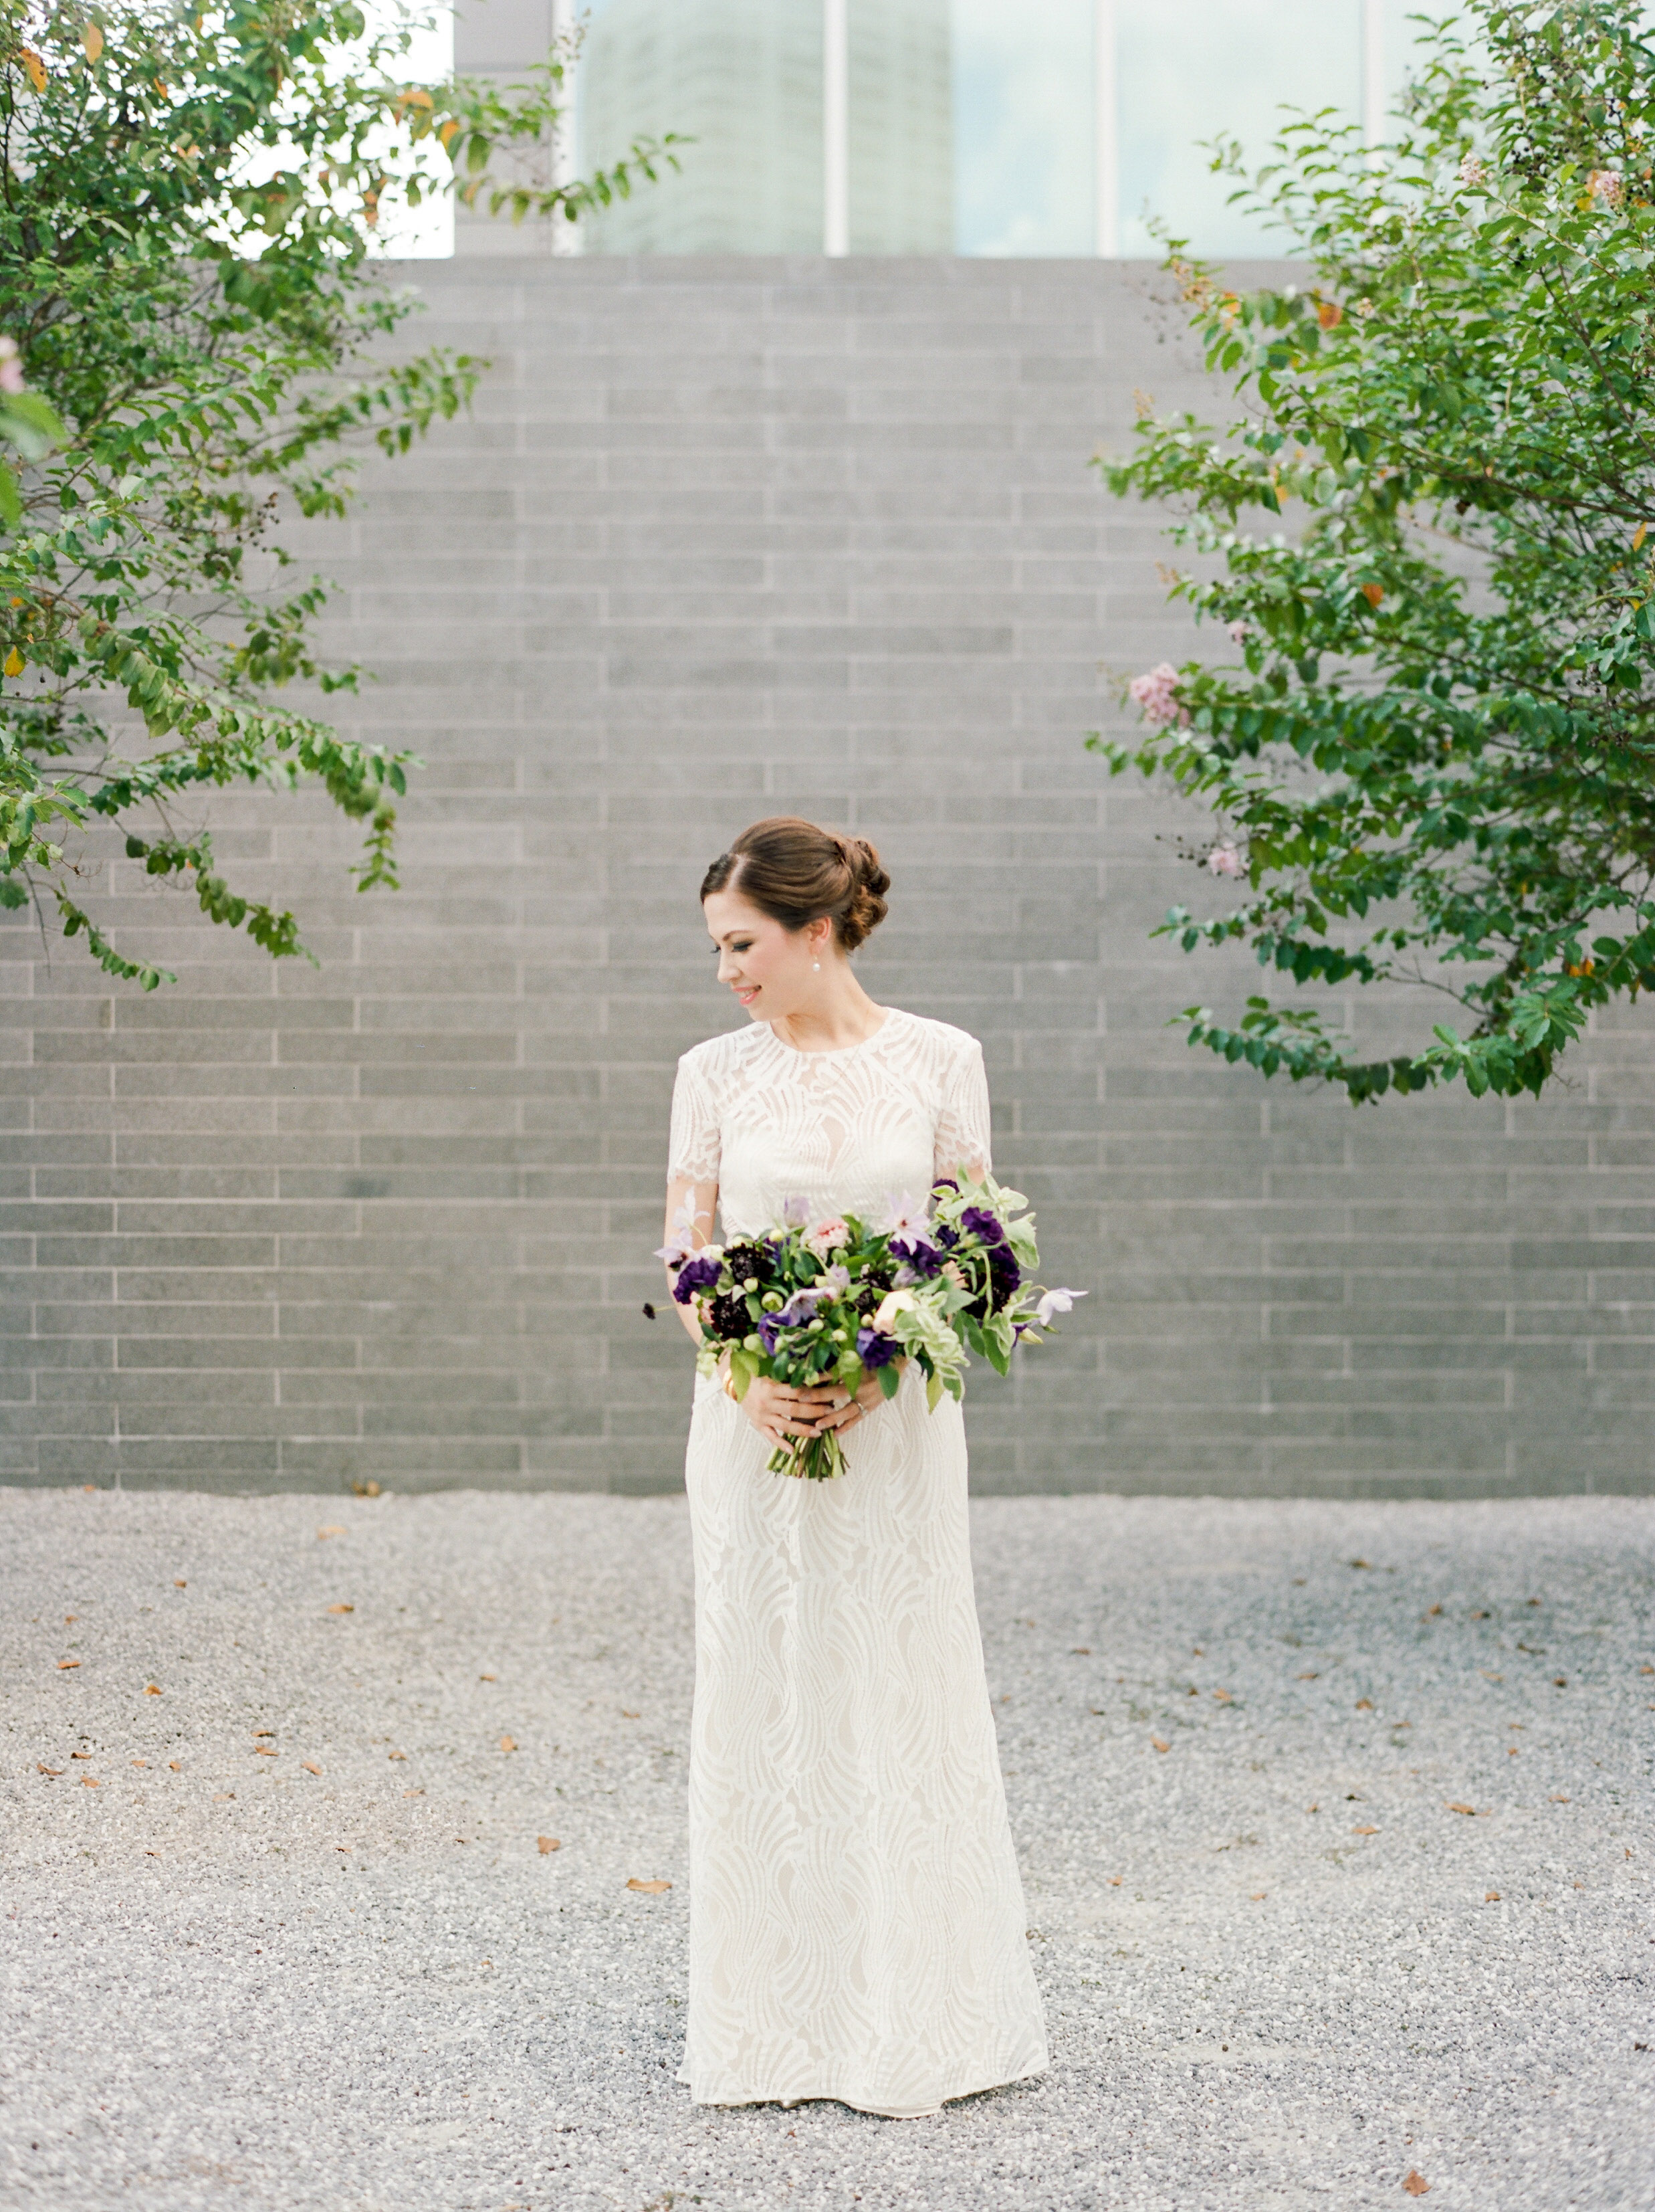 Houston Fine Art Film Wedding Photographer Blog Destination Fine Art Wedding Photographer